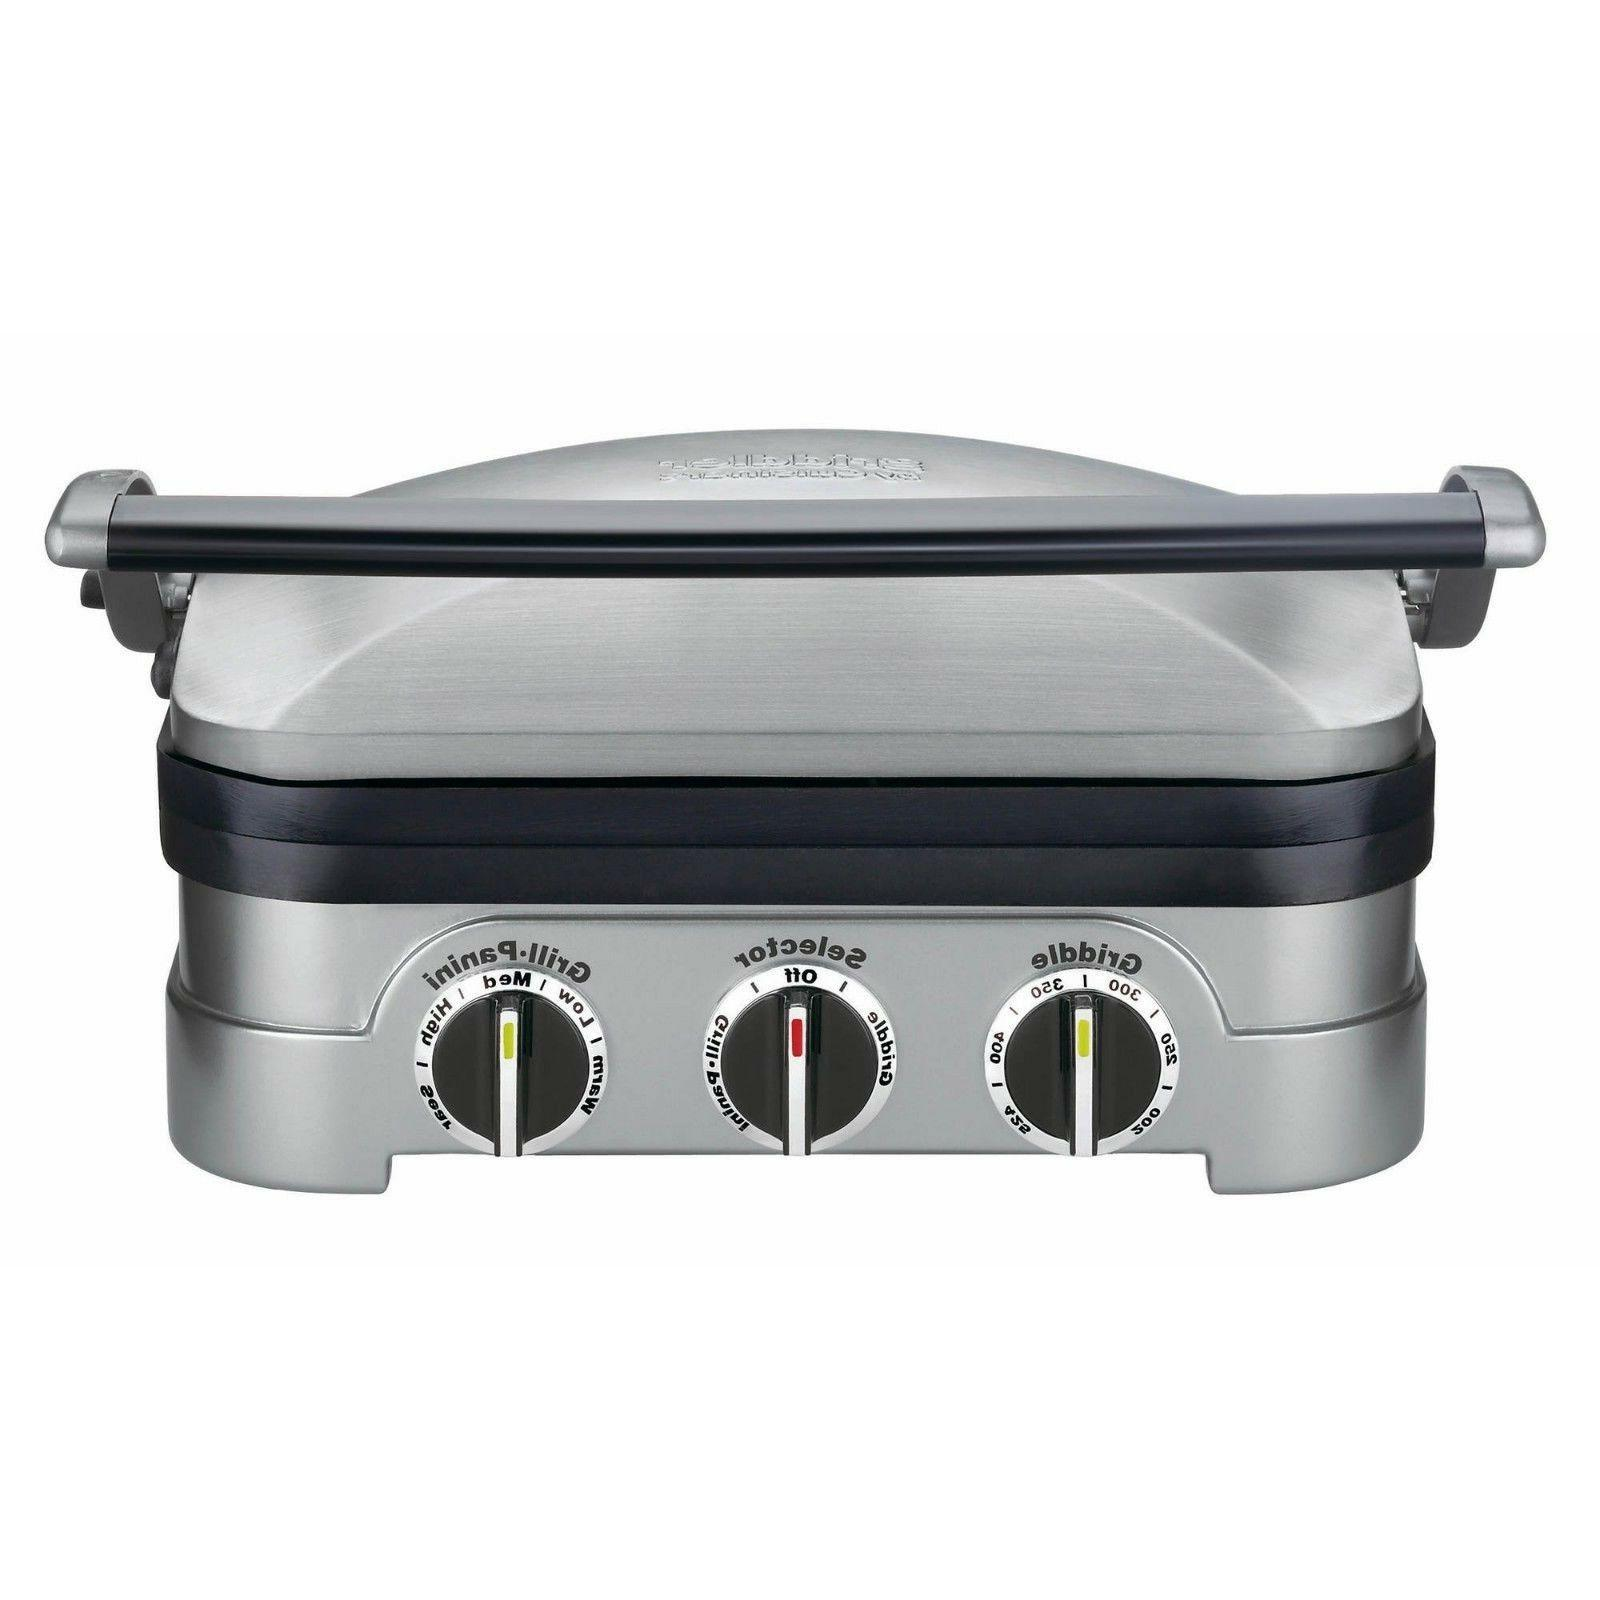 stainless griddler 5 in 1 countertop kitchen